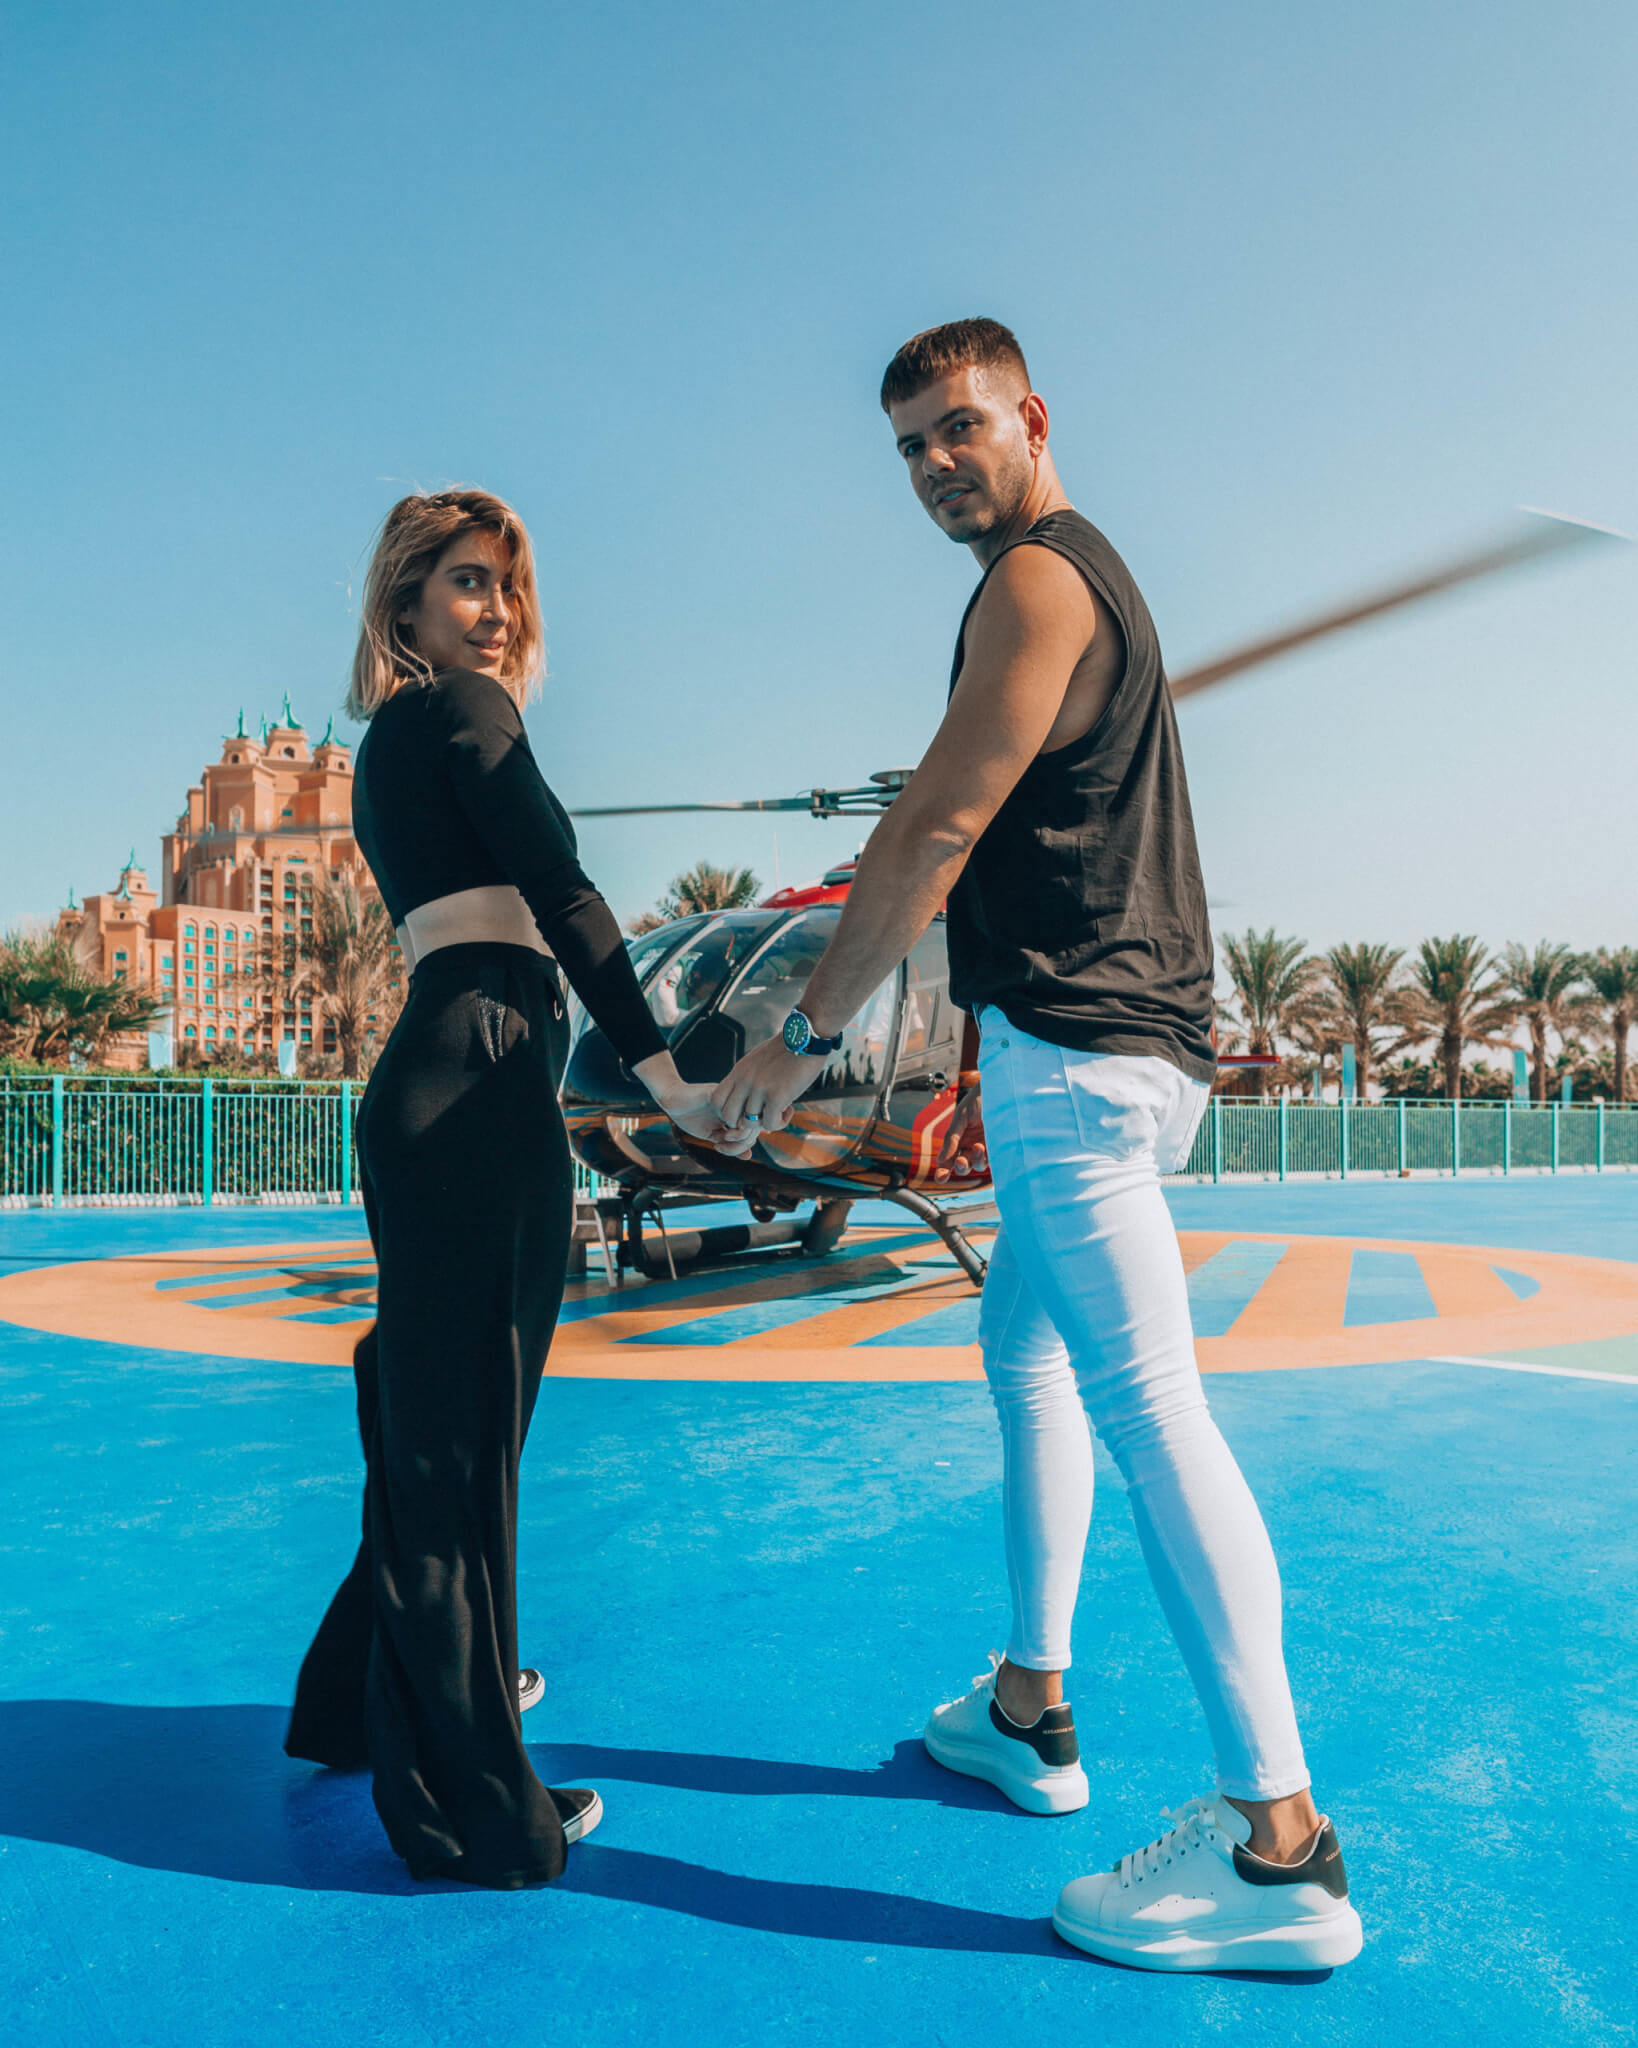 5 best things to do in Dubai 2020 - Dubai Helicopter Ride